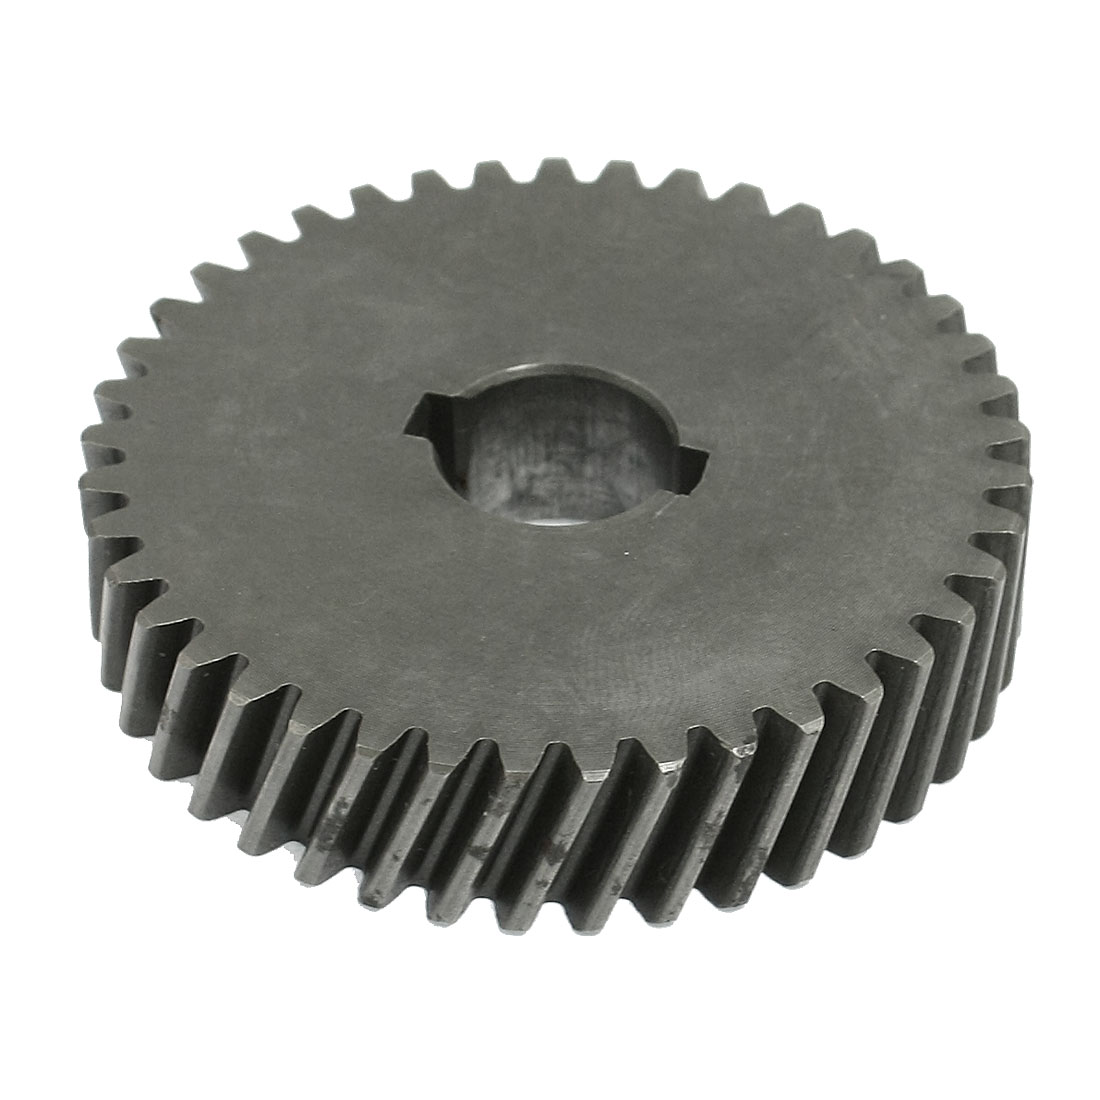 Repair Parts Gray Metal Electric Pick Gear for Makite HM 0810 DCA Z1G-FF-6